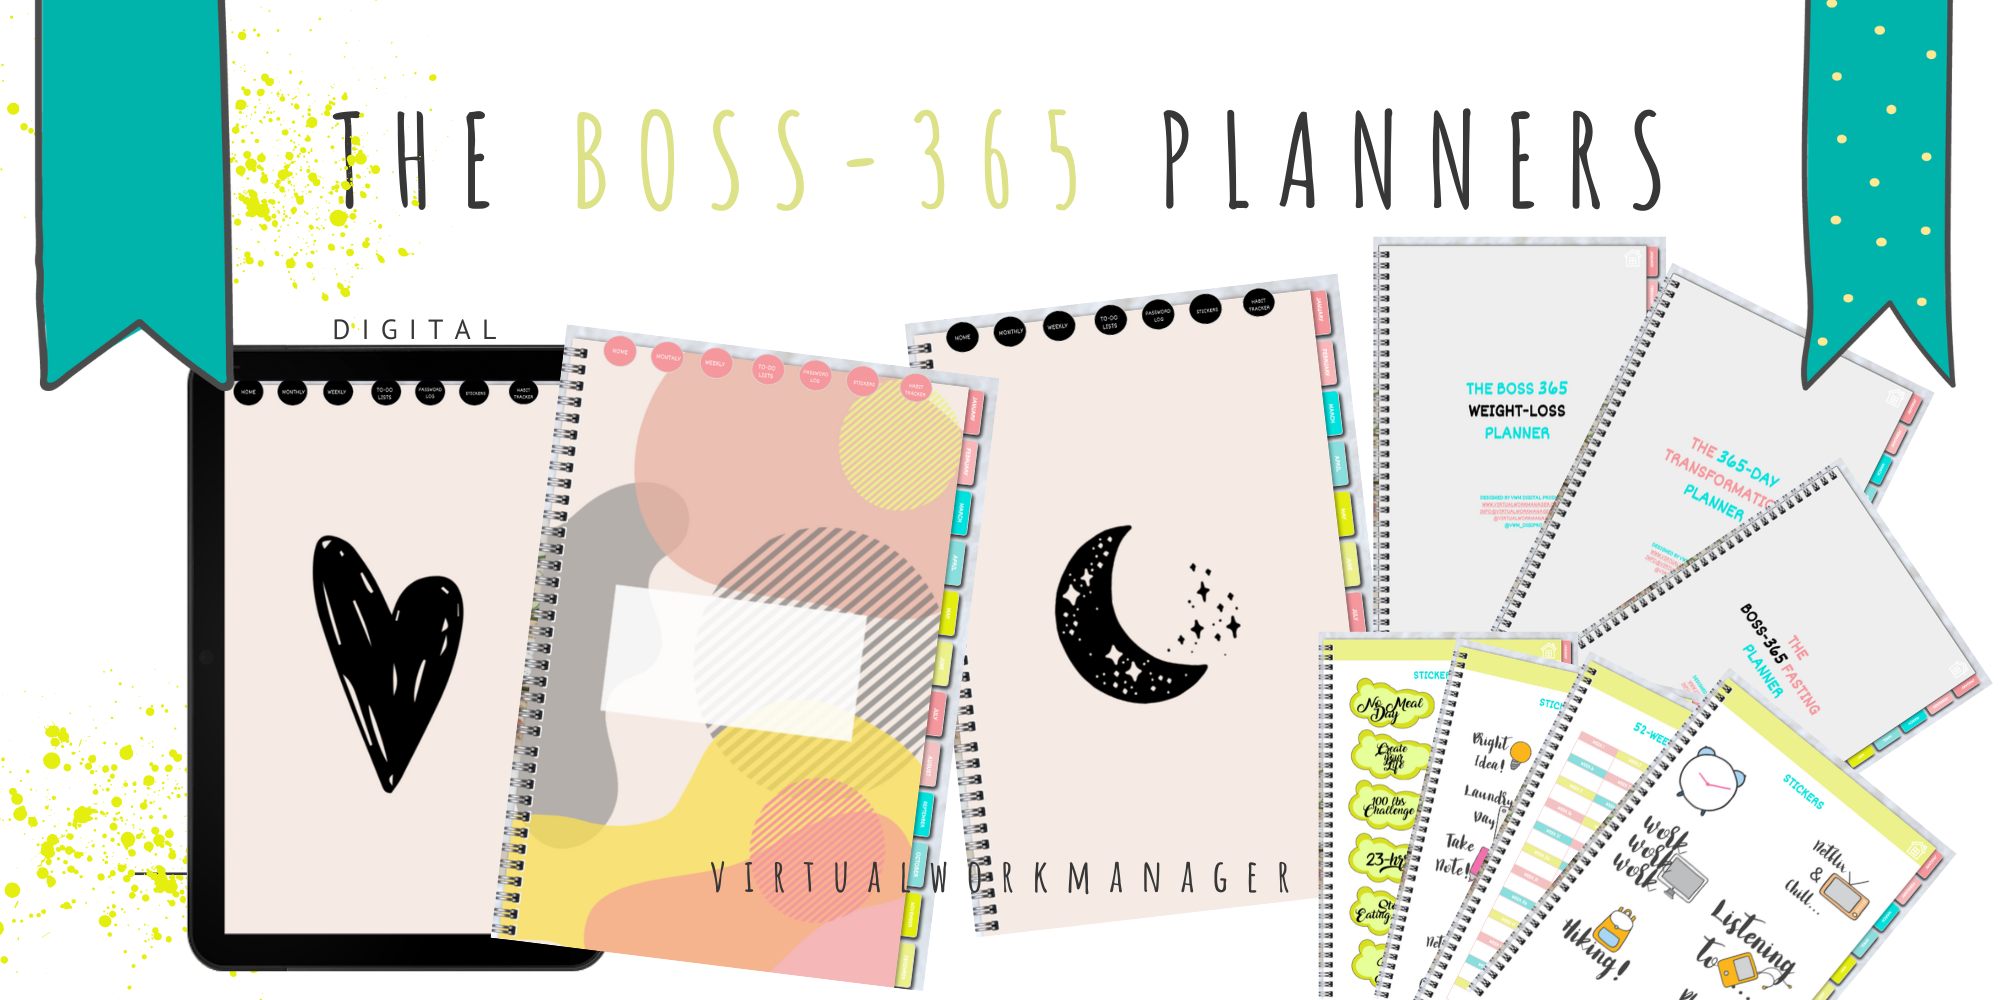 New Digital Planner Range: The Boss-365